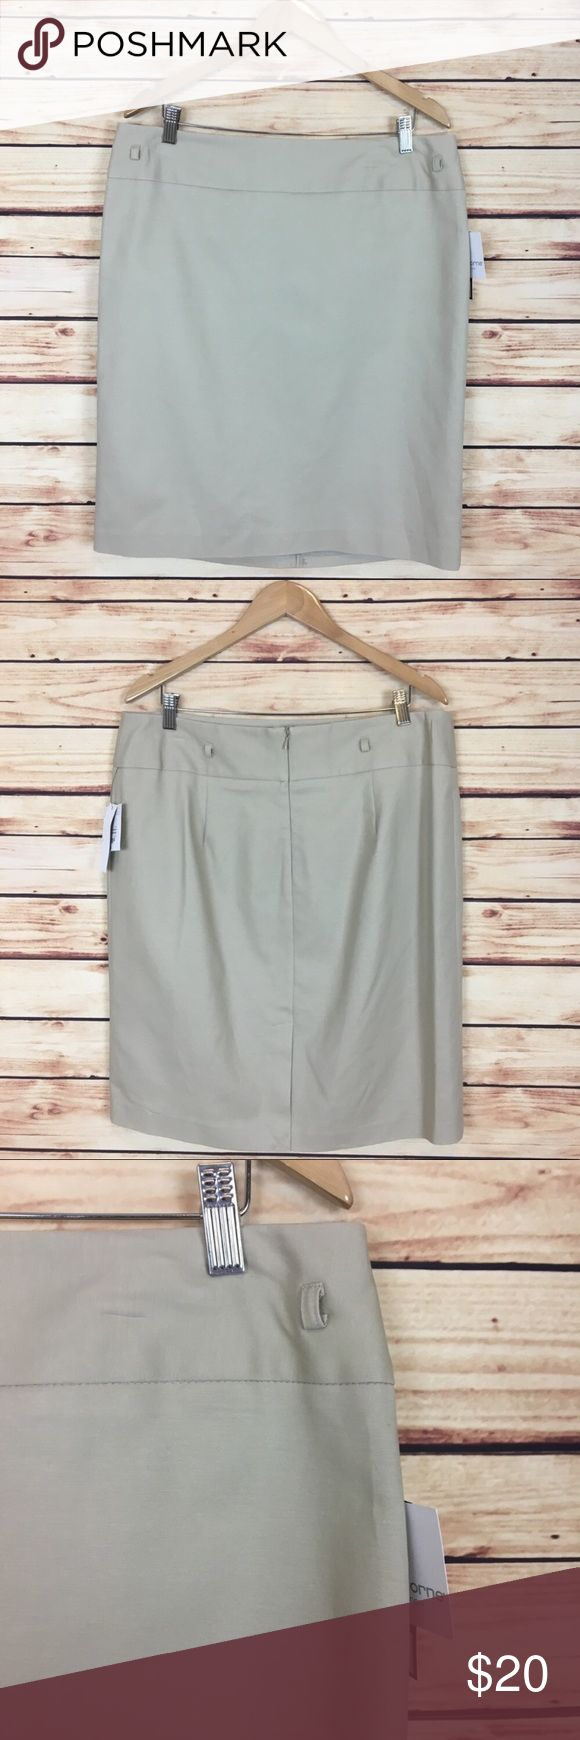 """NWT Liz Claiborne Tan Khaki Pencil Skirt Size 16 Liz Claiborne pencil skirt. Tan. Back slit. Back zipper. Belt loops, no belt included. Size 16.  New with tags and no flaws.  Measurements are approximately: 36"""" waist, 44"""" hips, and 23.5"""" length.  98% cotton 2% spandex. Polyester lining.  No trades. All items come from a pet friendly home. Bundle to save! Liz Claiborne Skirts Pencil"""